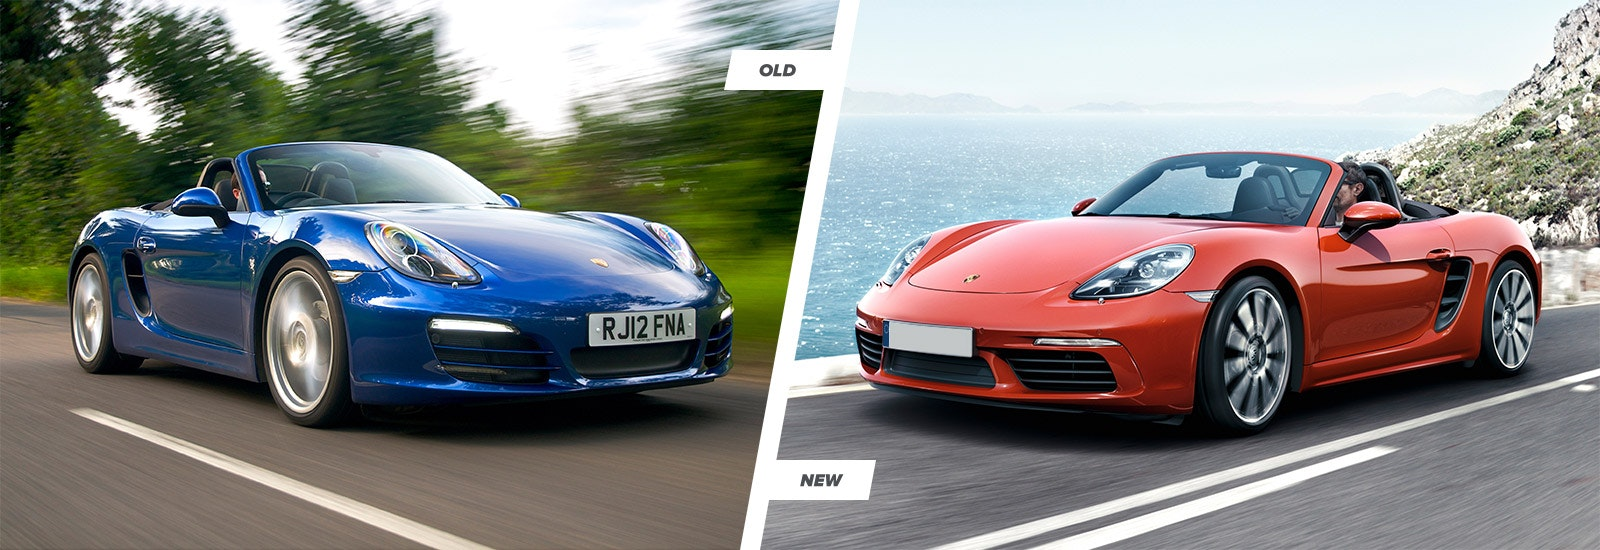 Porsche 718 Boxster Old Vs New Comparison Carwow